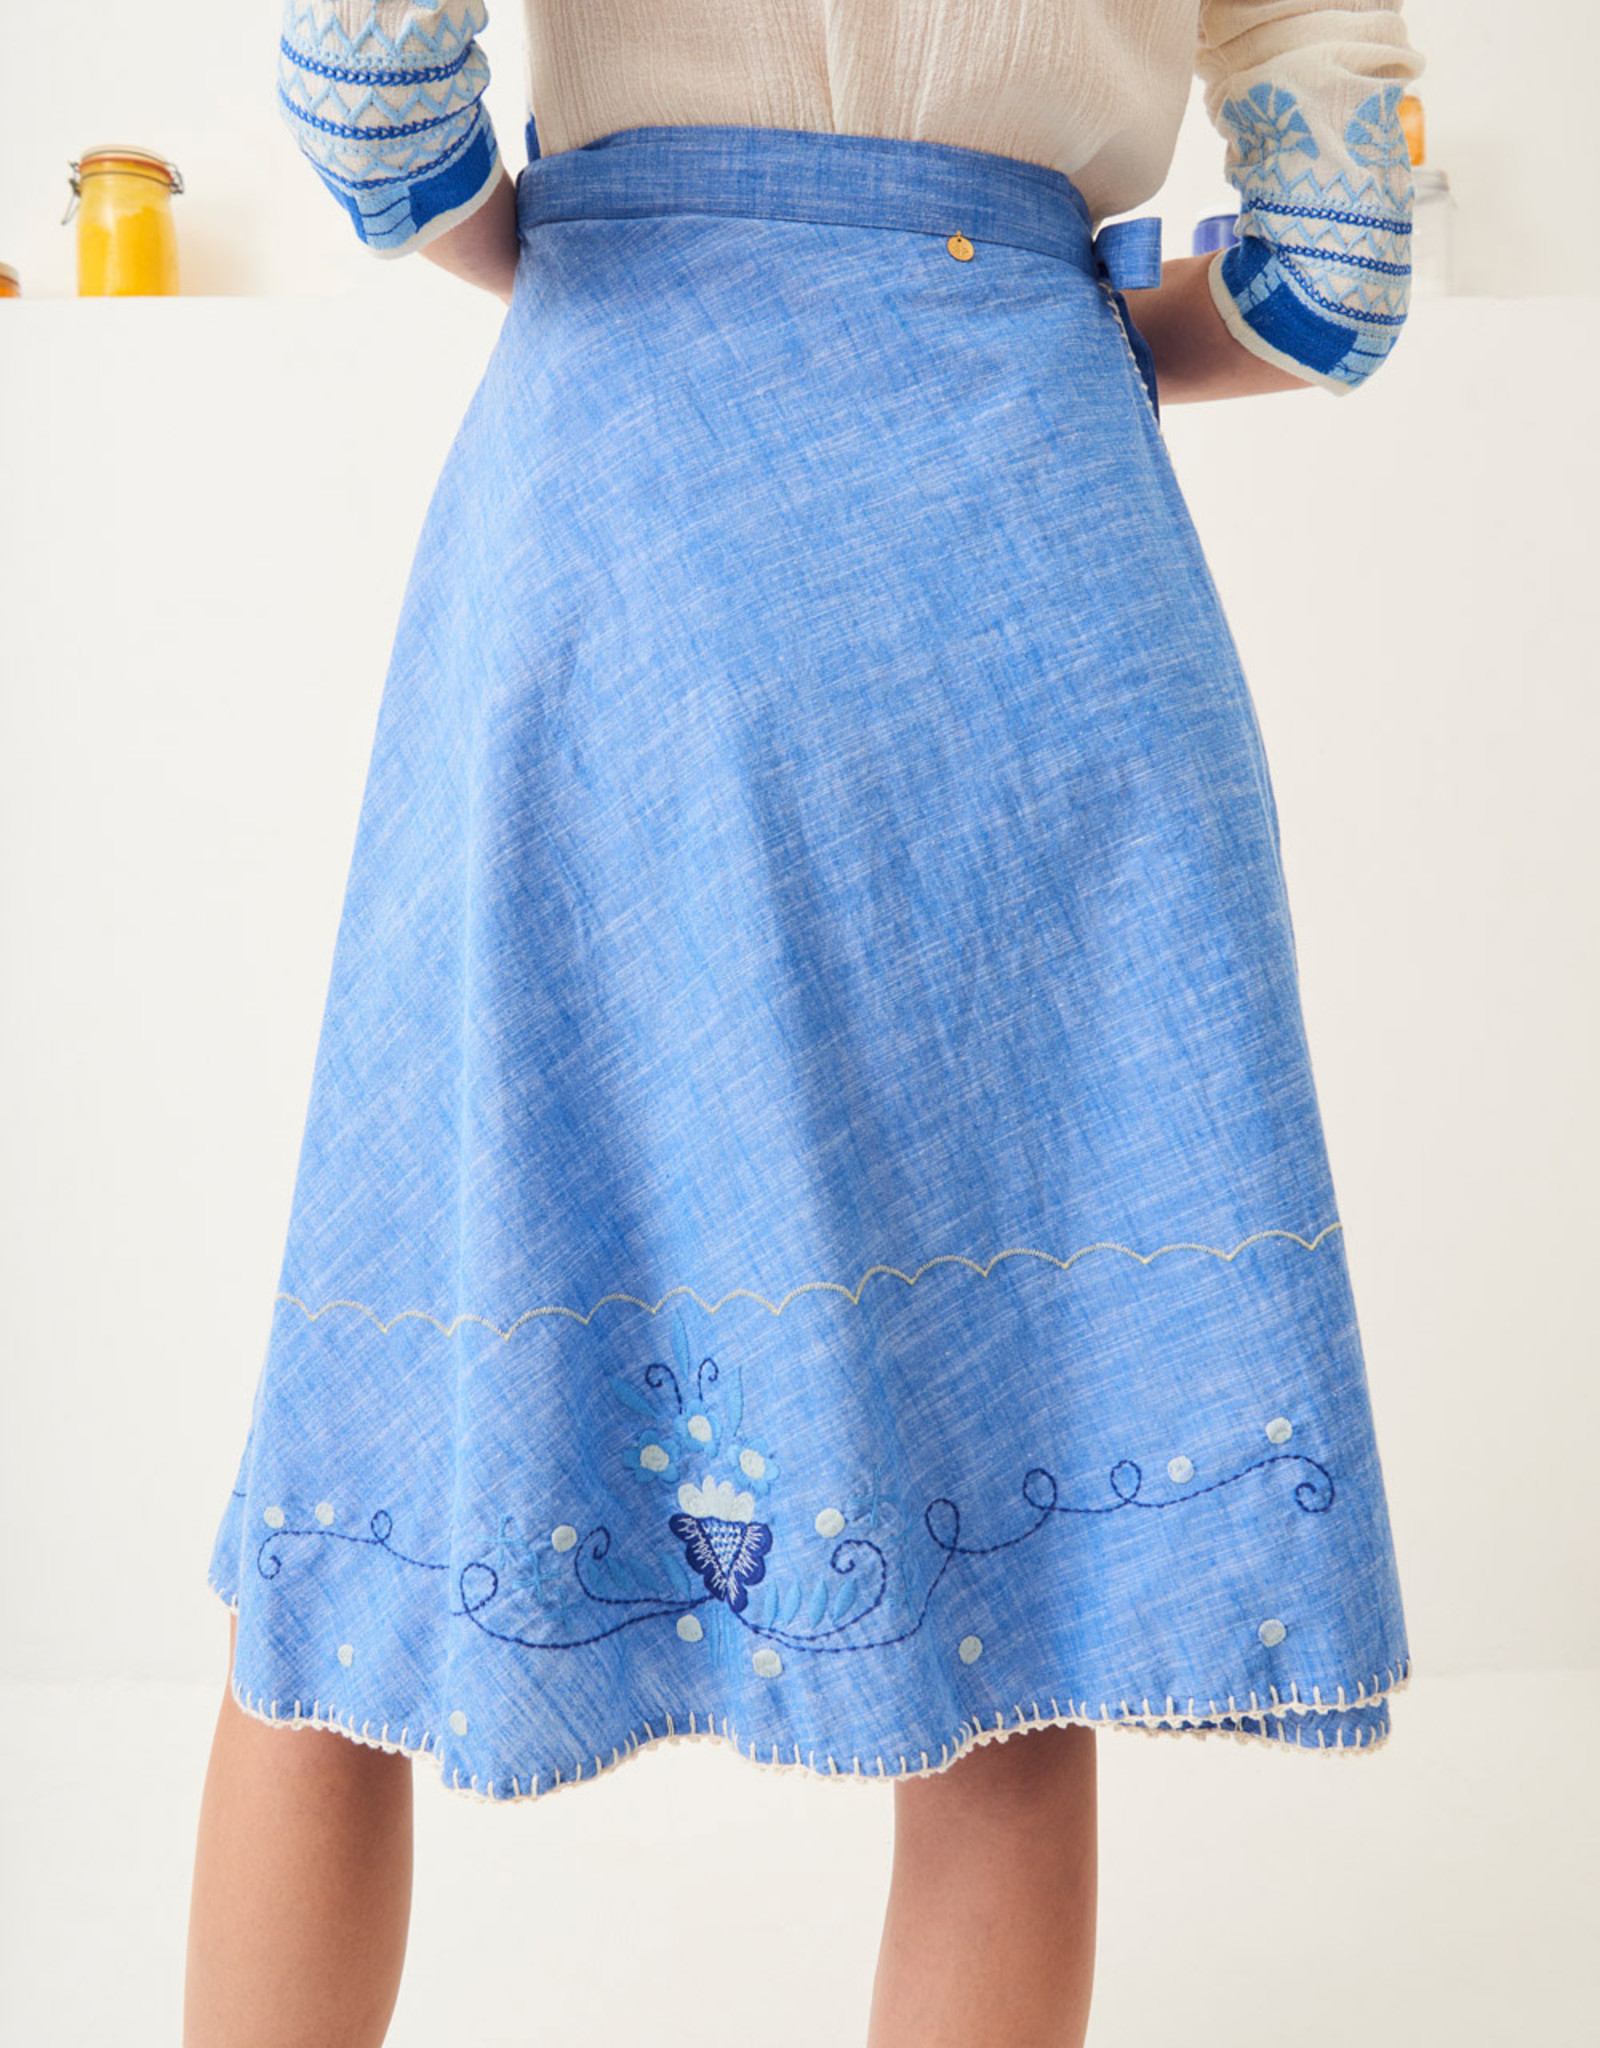 ANTIK BATIK PONY SKIRT